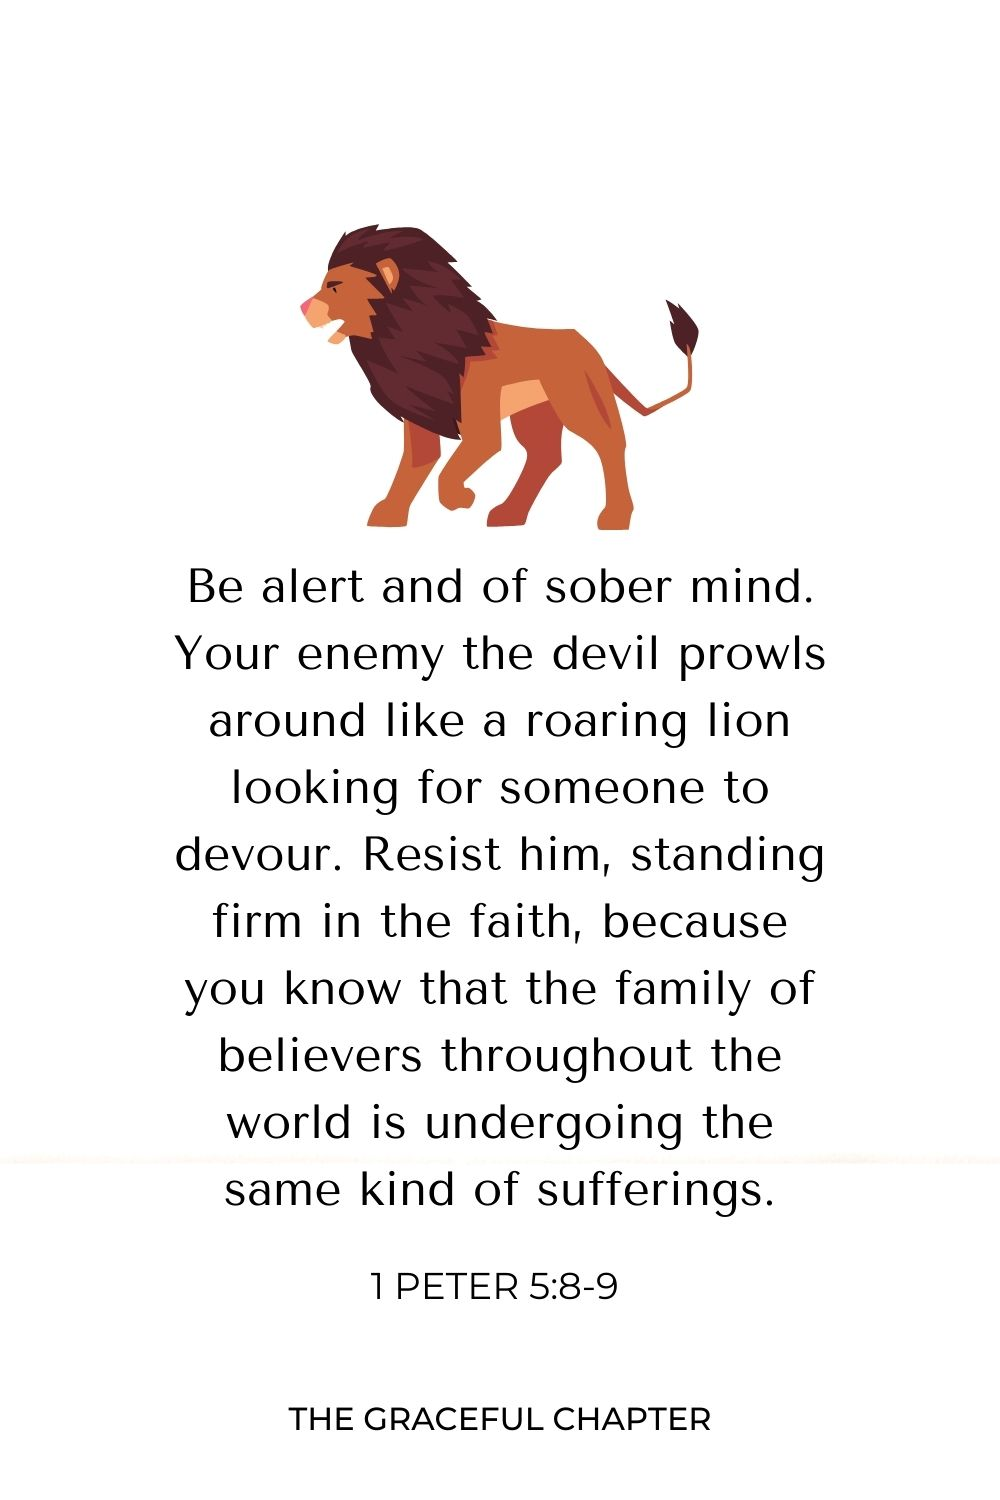 Be alert and of sober mind. Your enemy the devil prowls around like a roaring lion looking for someone to devour. Resist him, standing firm in the faith, because you know that the family of believers throughout the world is undergoing the same kind of sufferings. 1 Peter 5:8-9